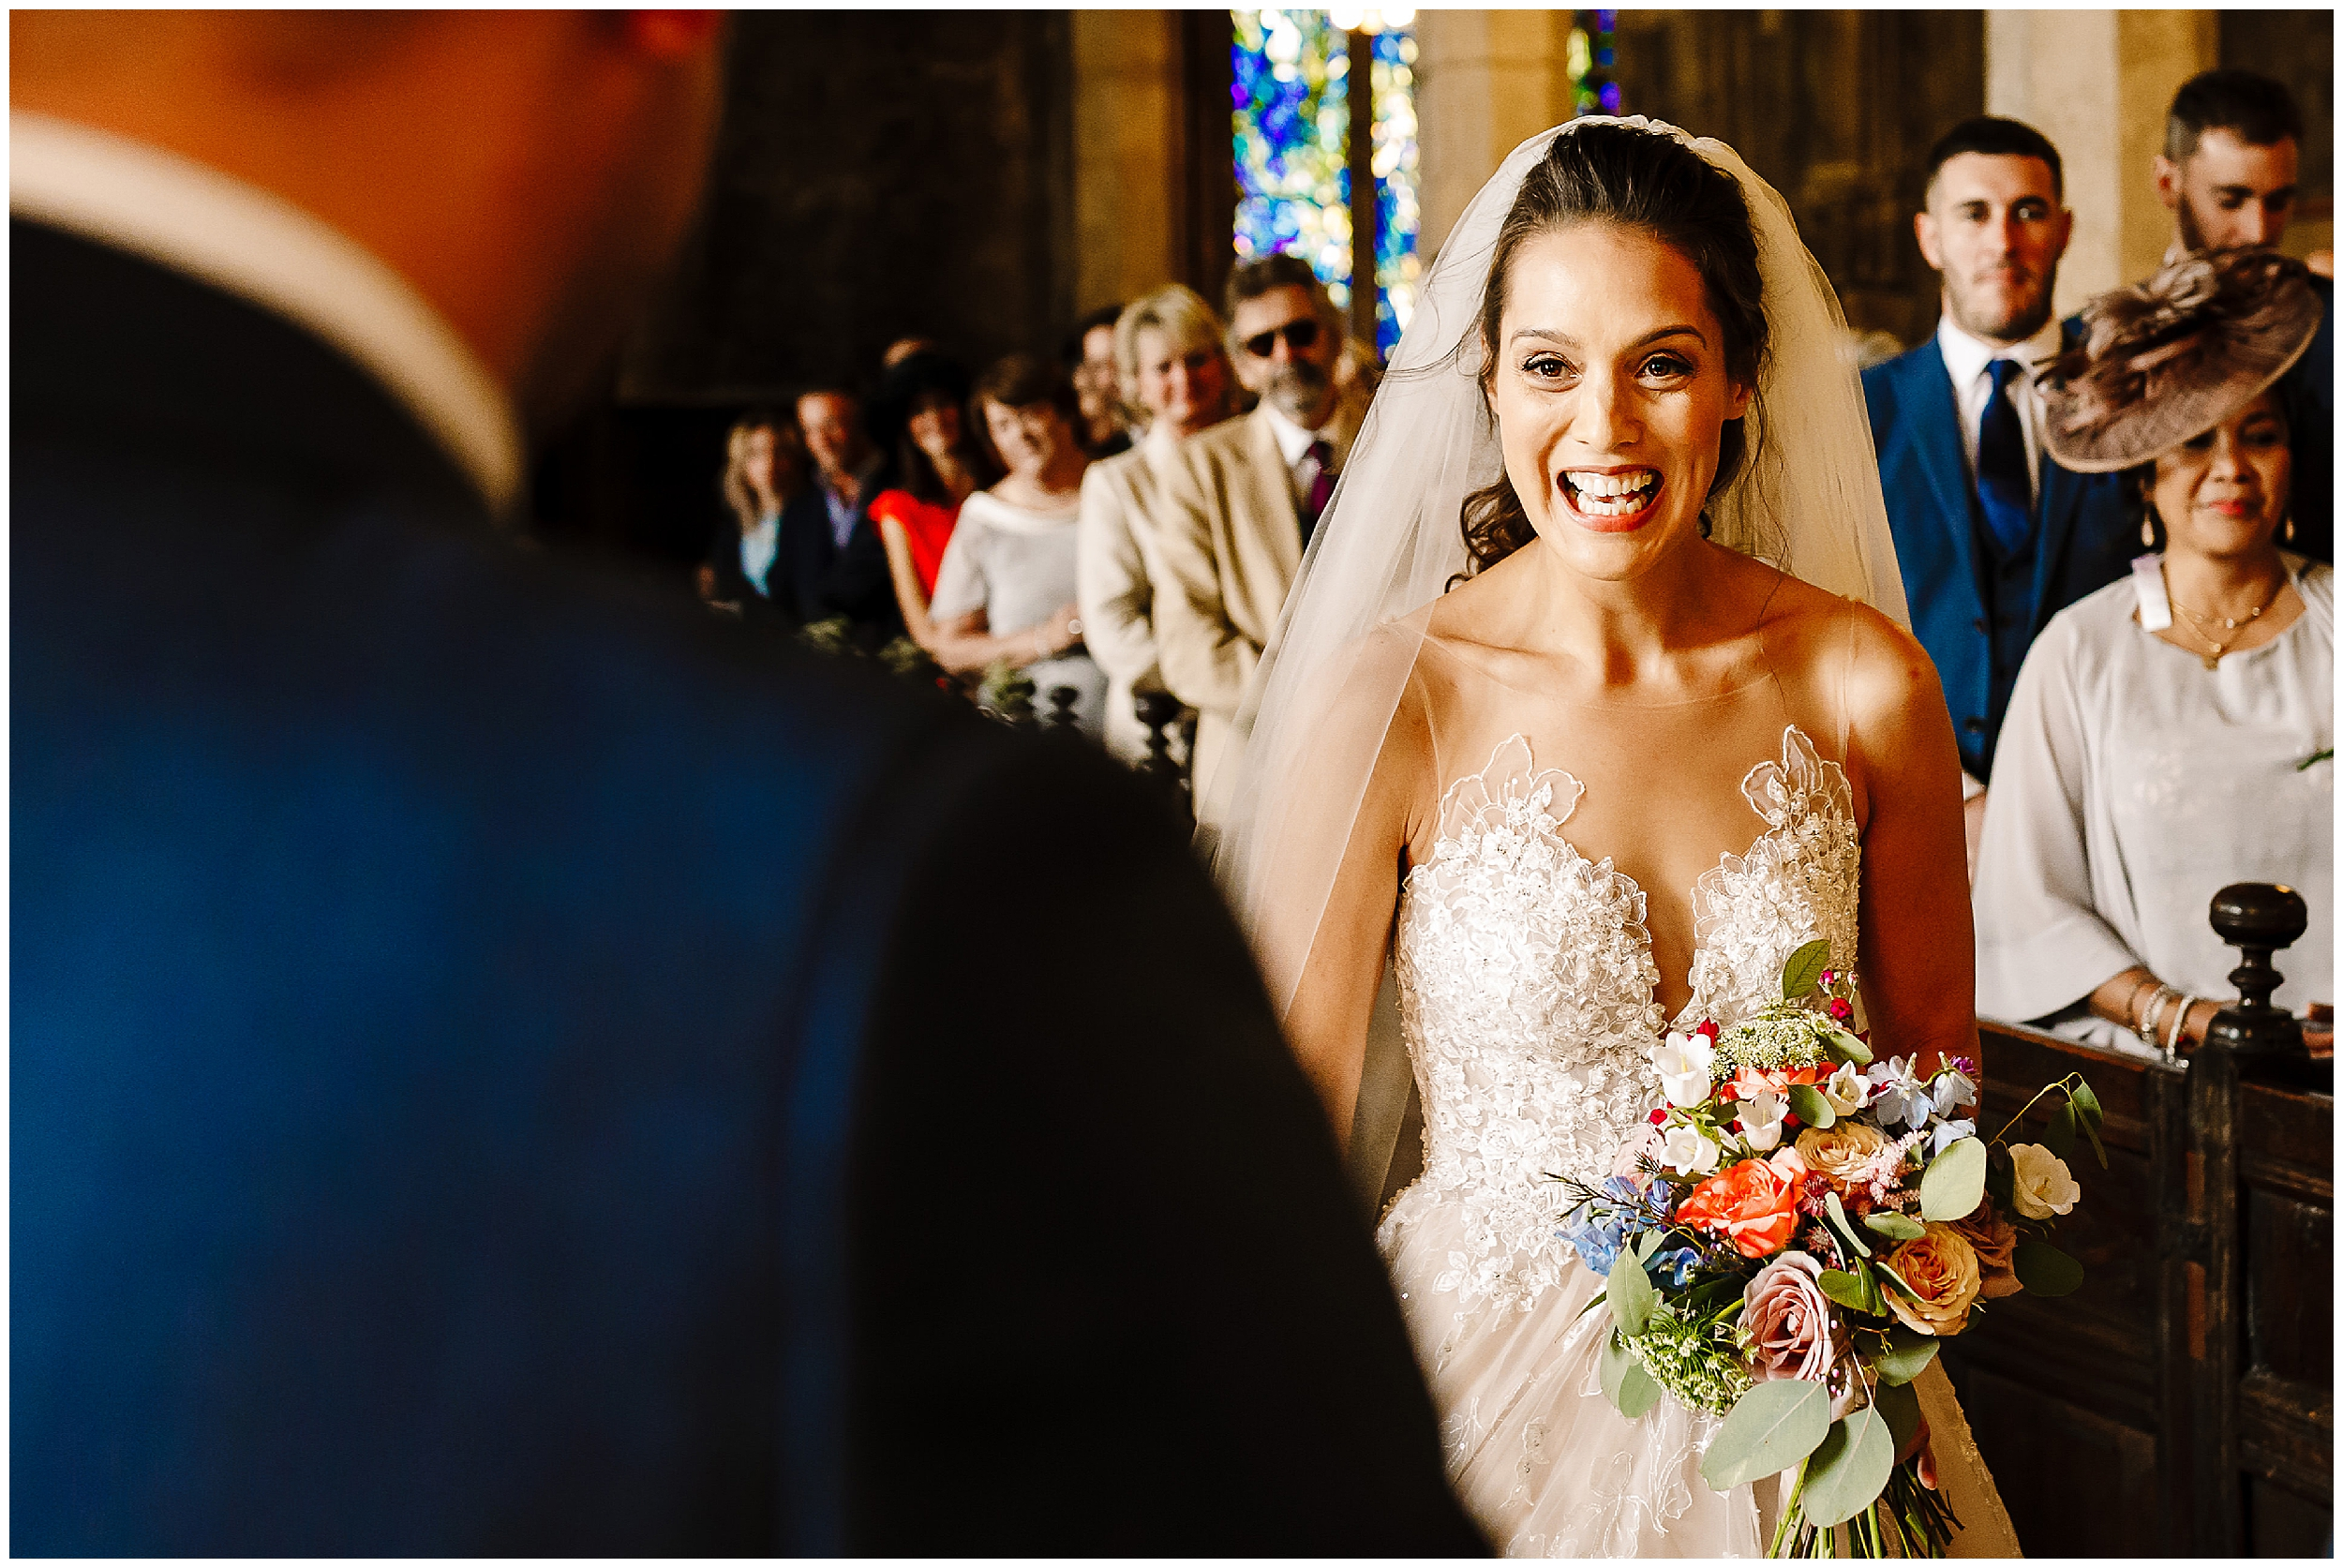 A bride seeing the groom for the first time as she walks down the aisle